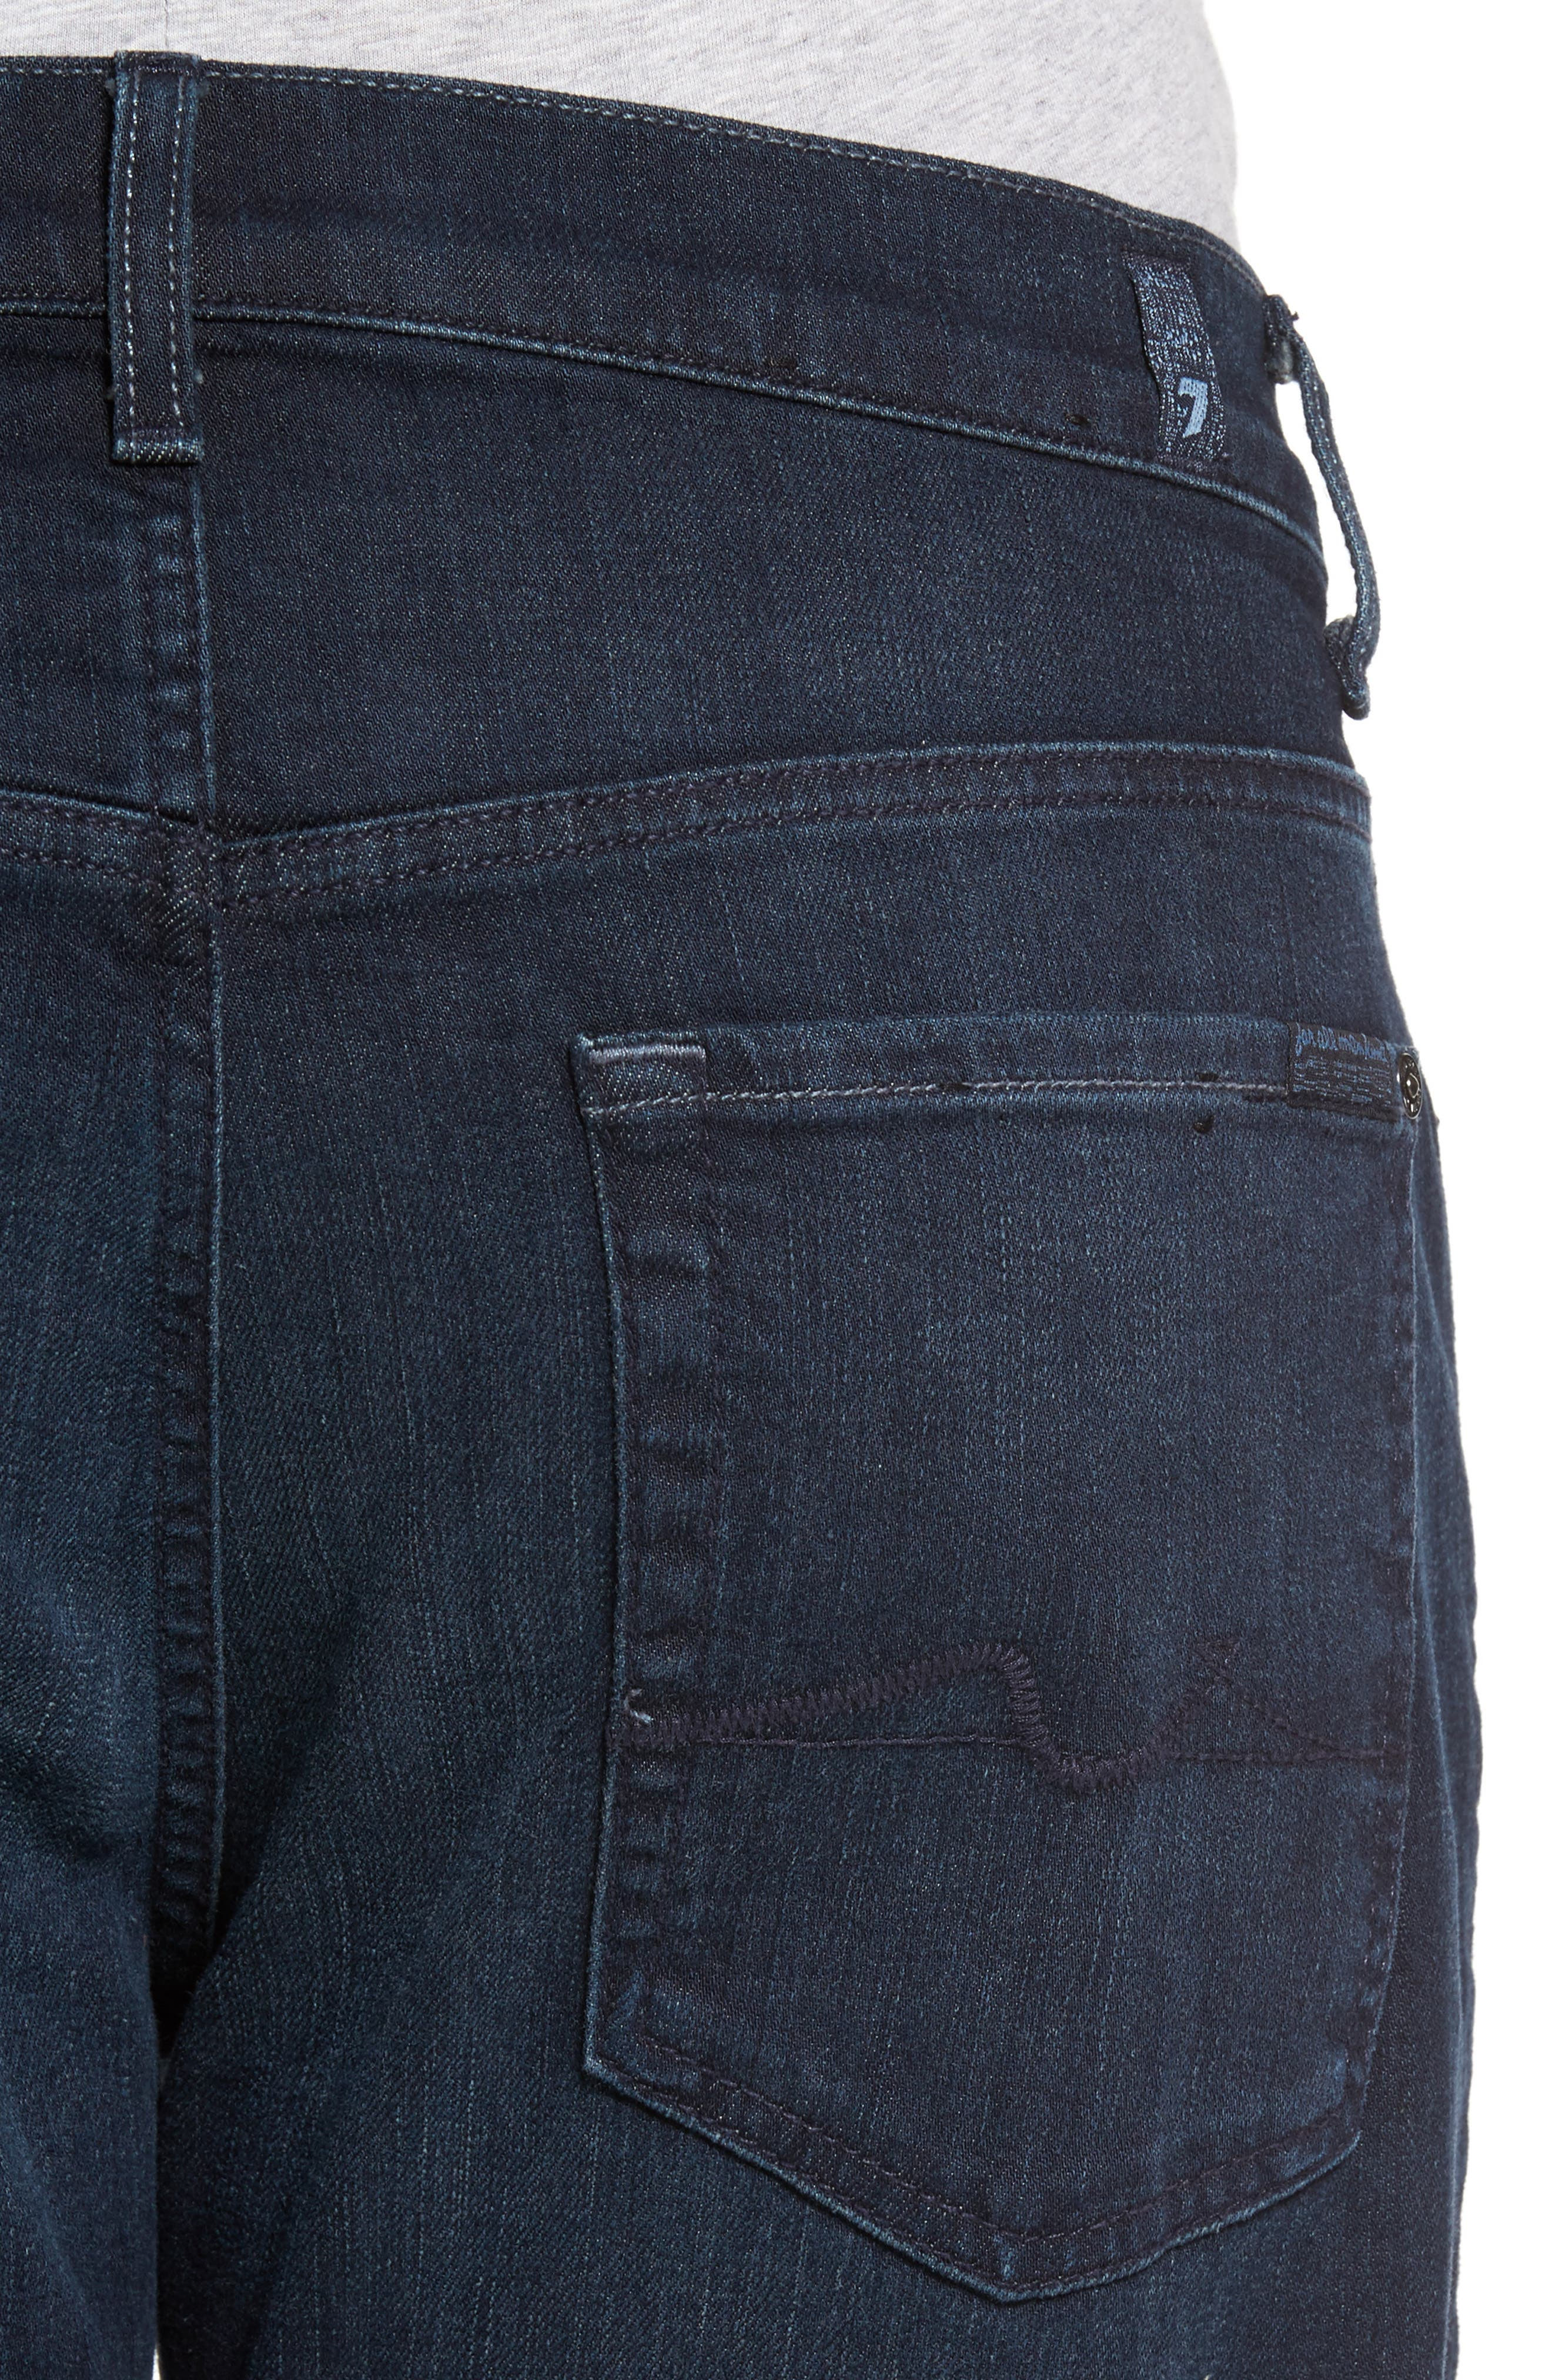 7 FOR ALL MANKIND<SUP>®</SUP>, Luxe Performance - Carsen Straight Leg Jeans, Alternate thumbnail 5, color, DARK CURRENT